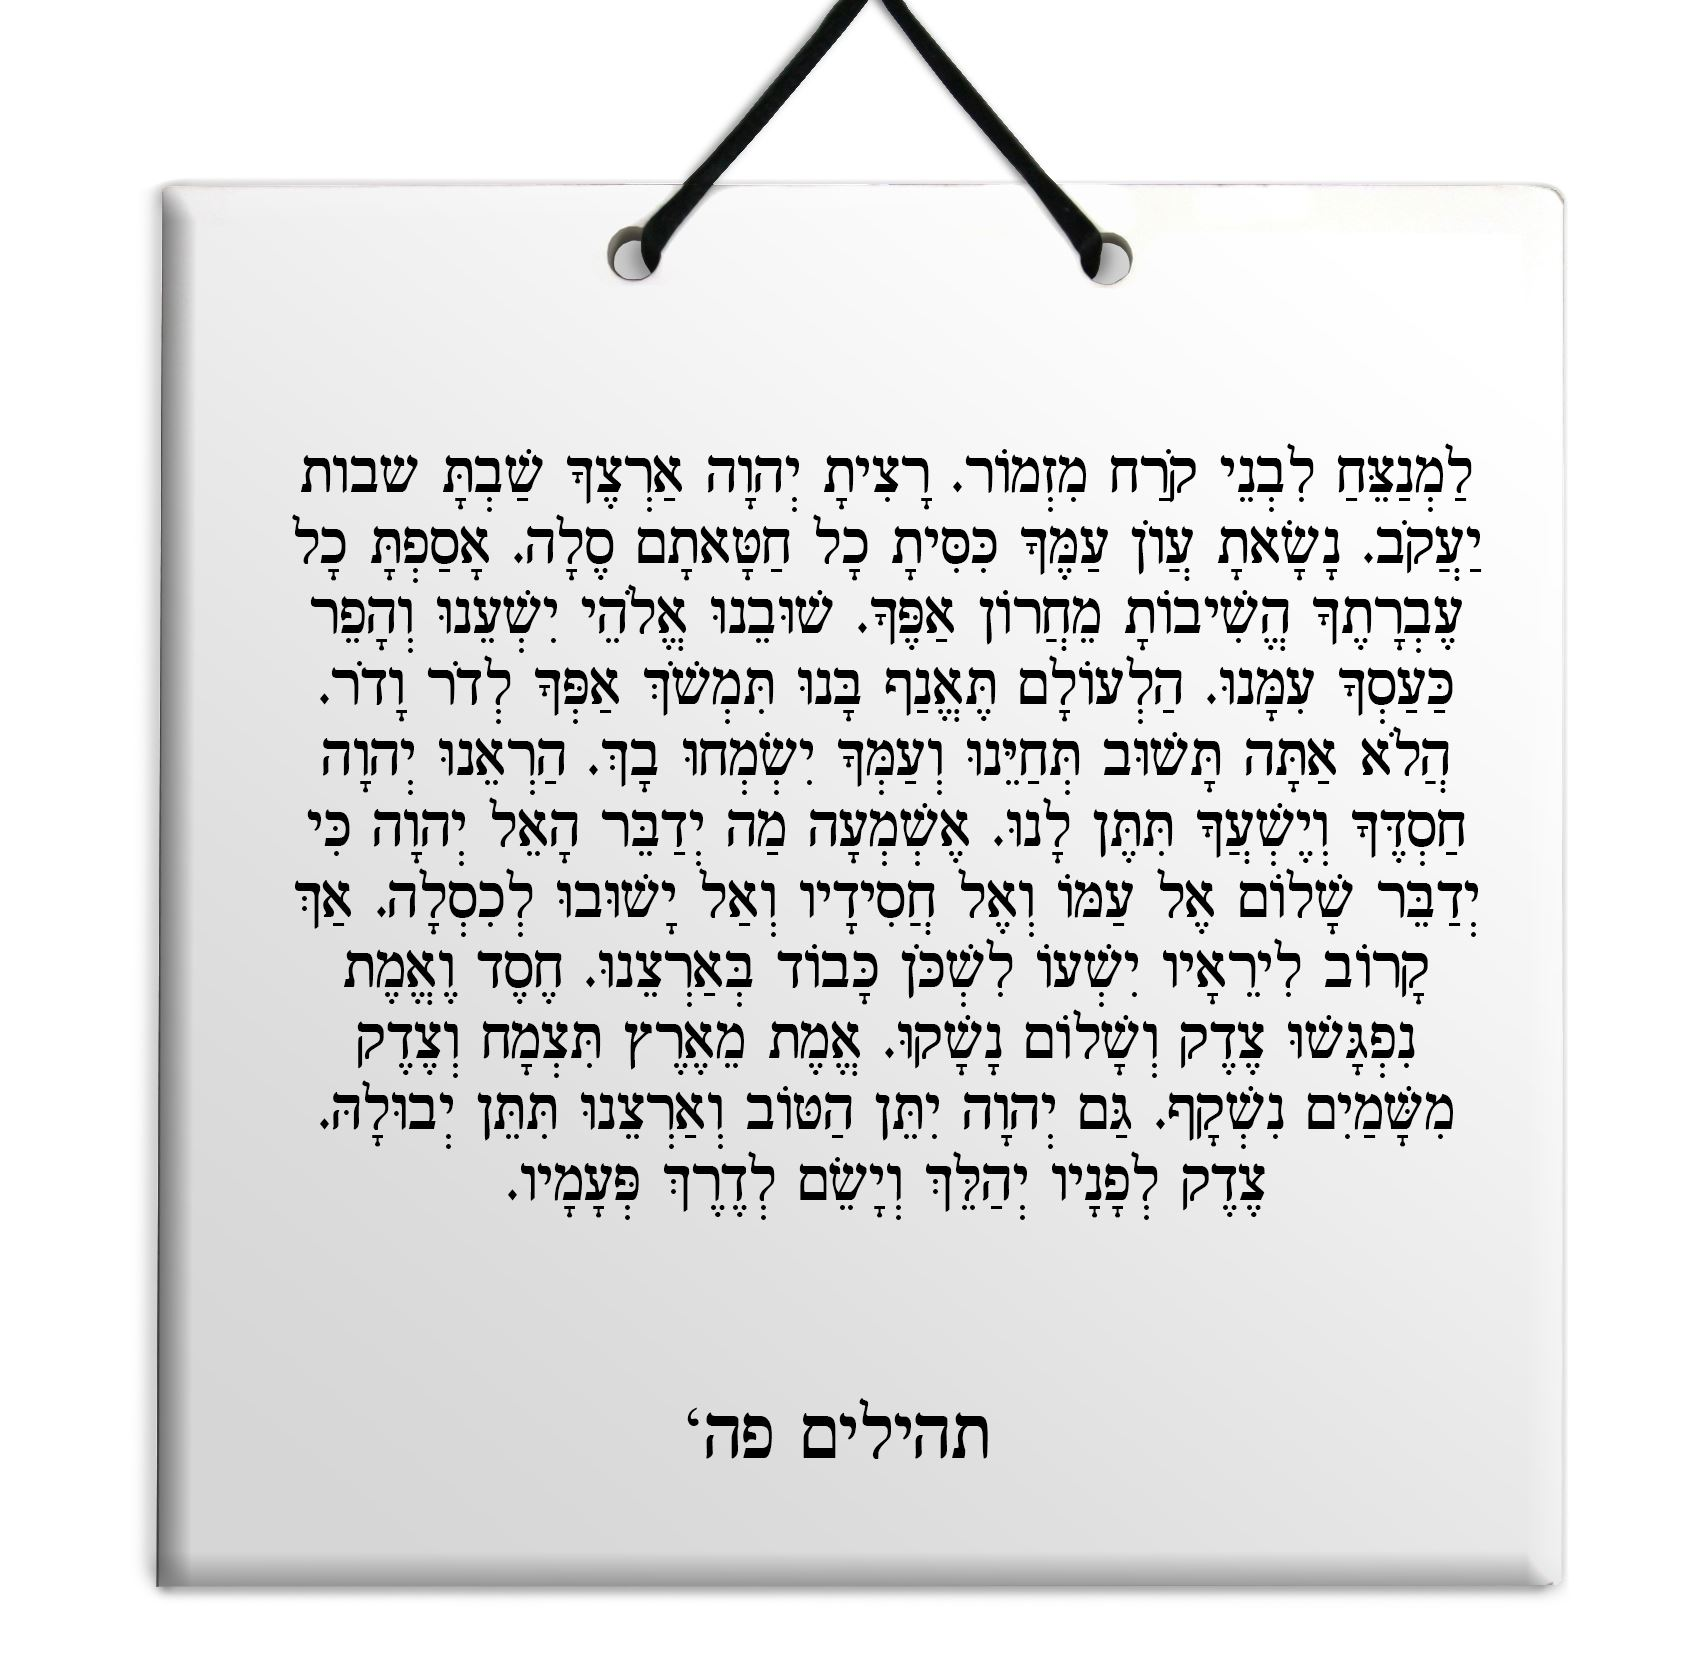 Details about Hebrew Book of Psalms Ceramic TILE holy bible Tehillim  Chapter 85 תהילים עברית